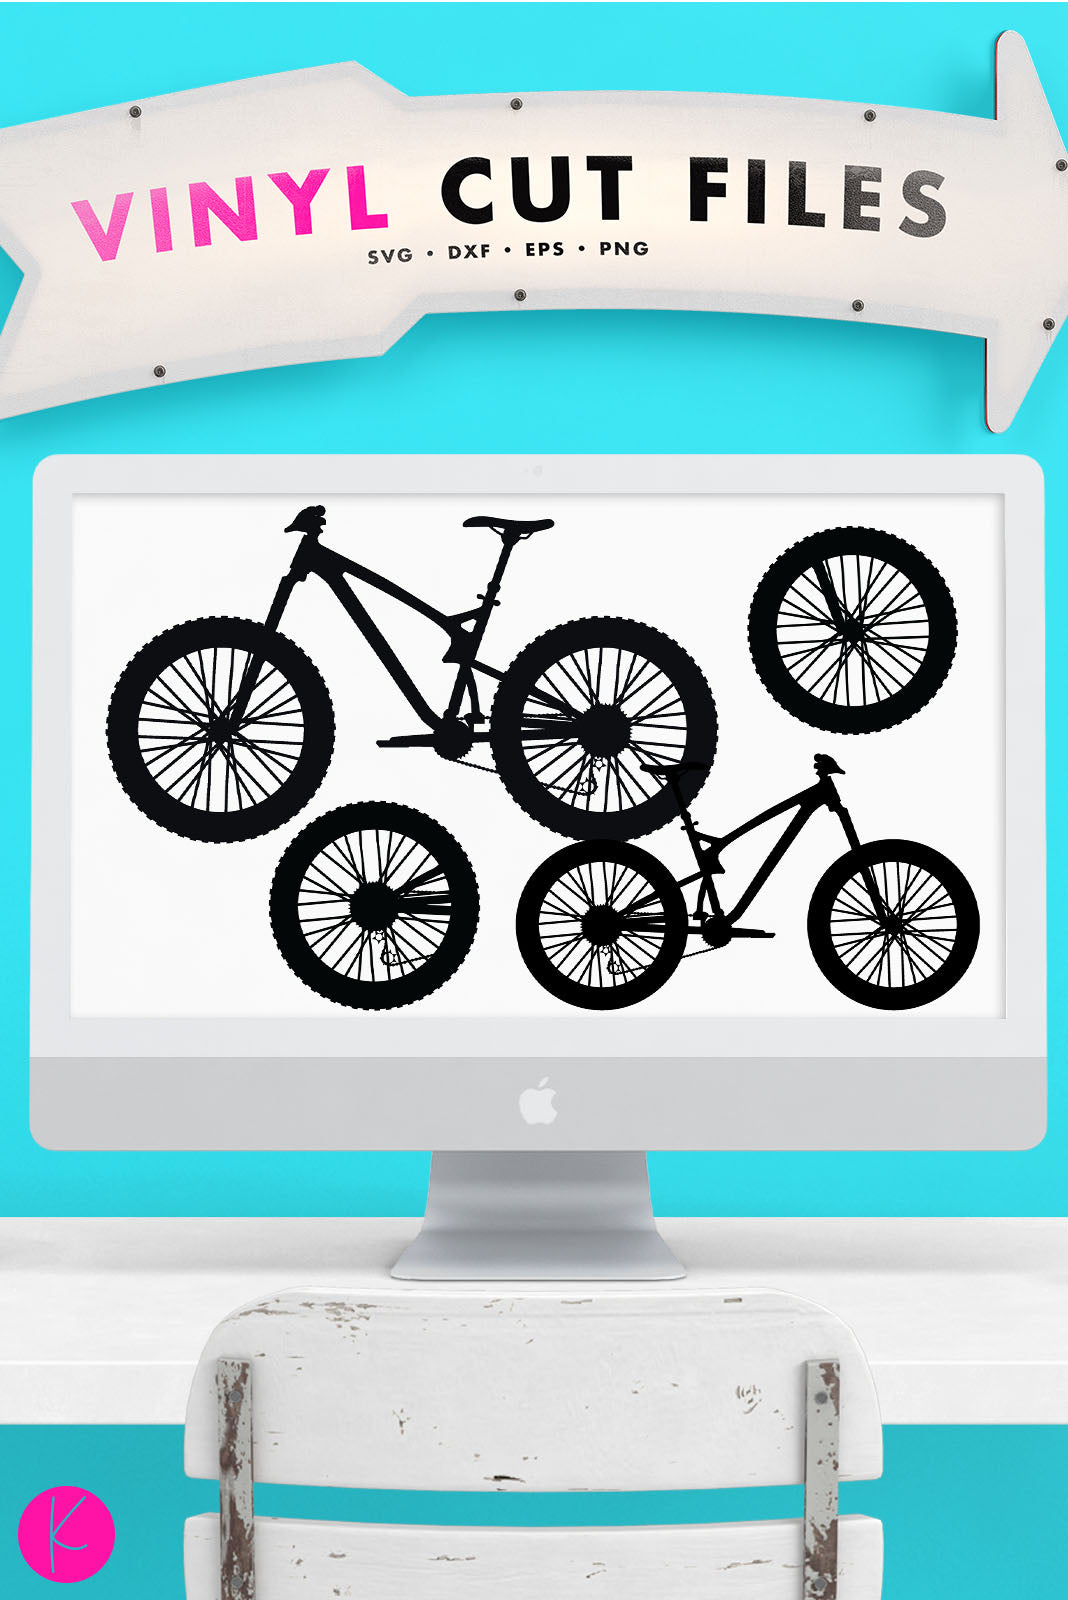 Mountain Bike | SVG DXF EPS PNG Cut Files Trail Bicycle Silhouette | SVG DXF EPS PNG Cut Files Trail Bike cut file for decals, shirts, totes and more.Looking for a Mountain Bike svg for that mountain biking enthusiast